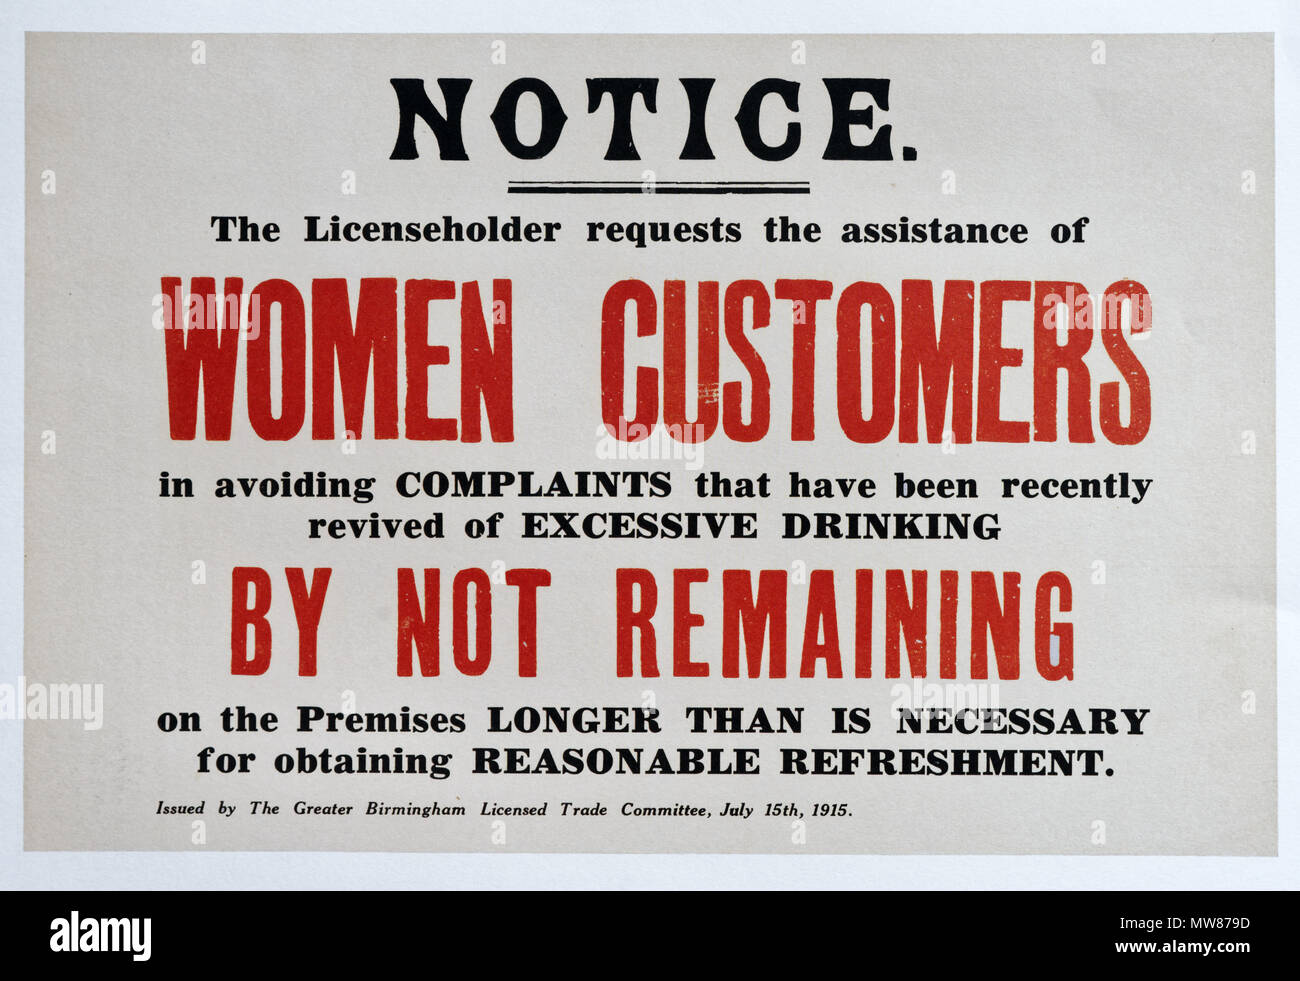 A British first world war notice to women customers in pubs to avoid excessive drinking - Stock Image